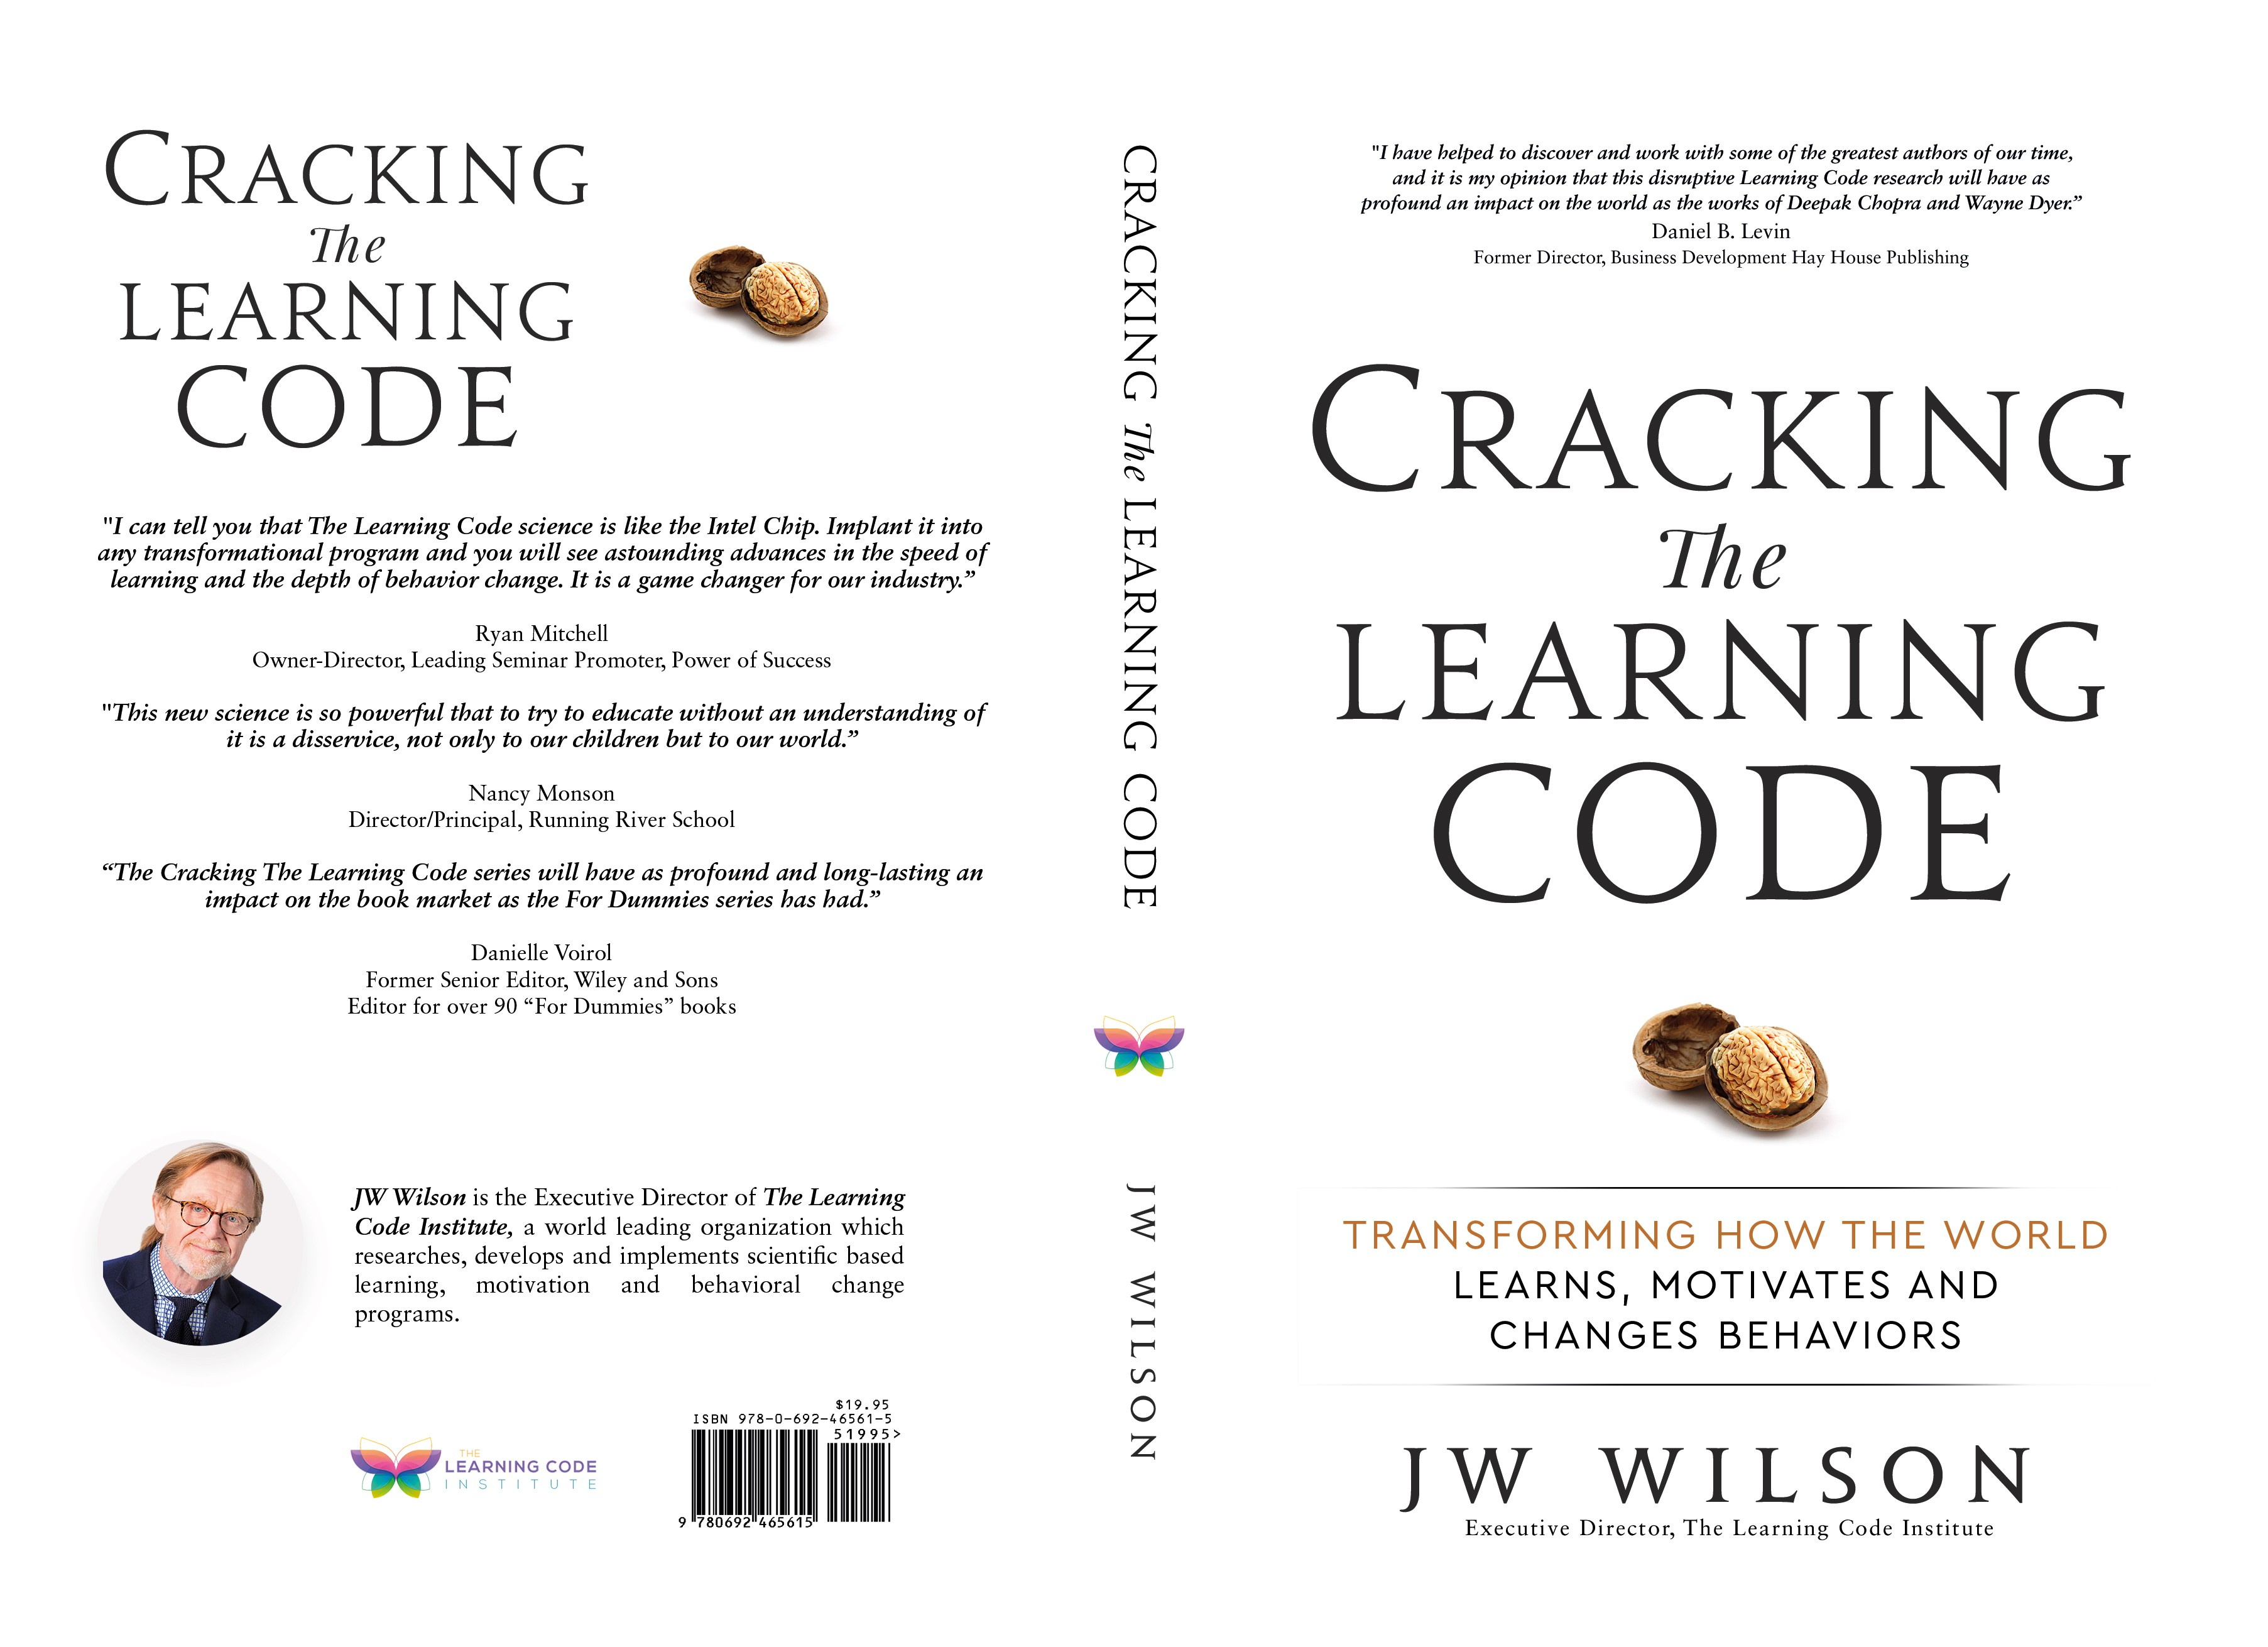 Cracking The Learning Code: Transforming How the World Learns, Motivates and Changes Behaviors